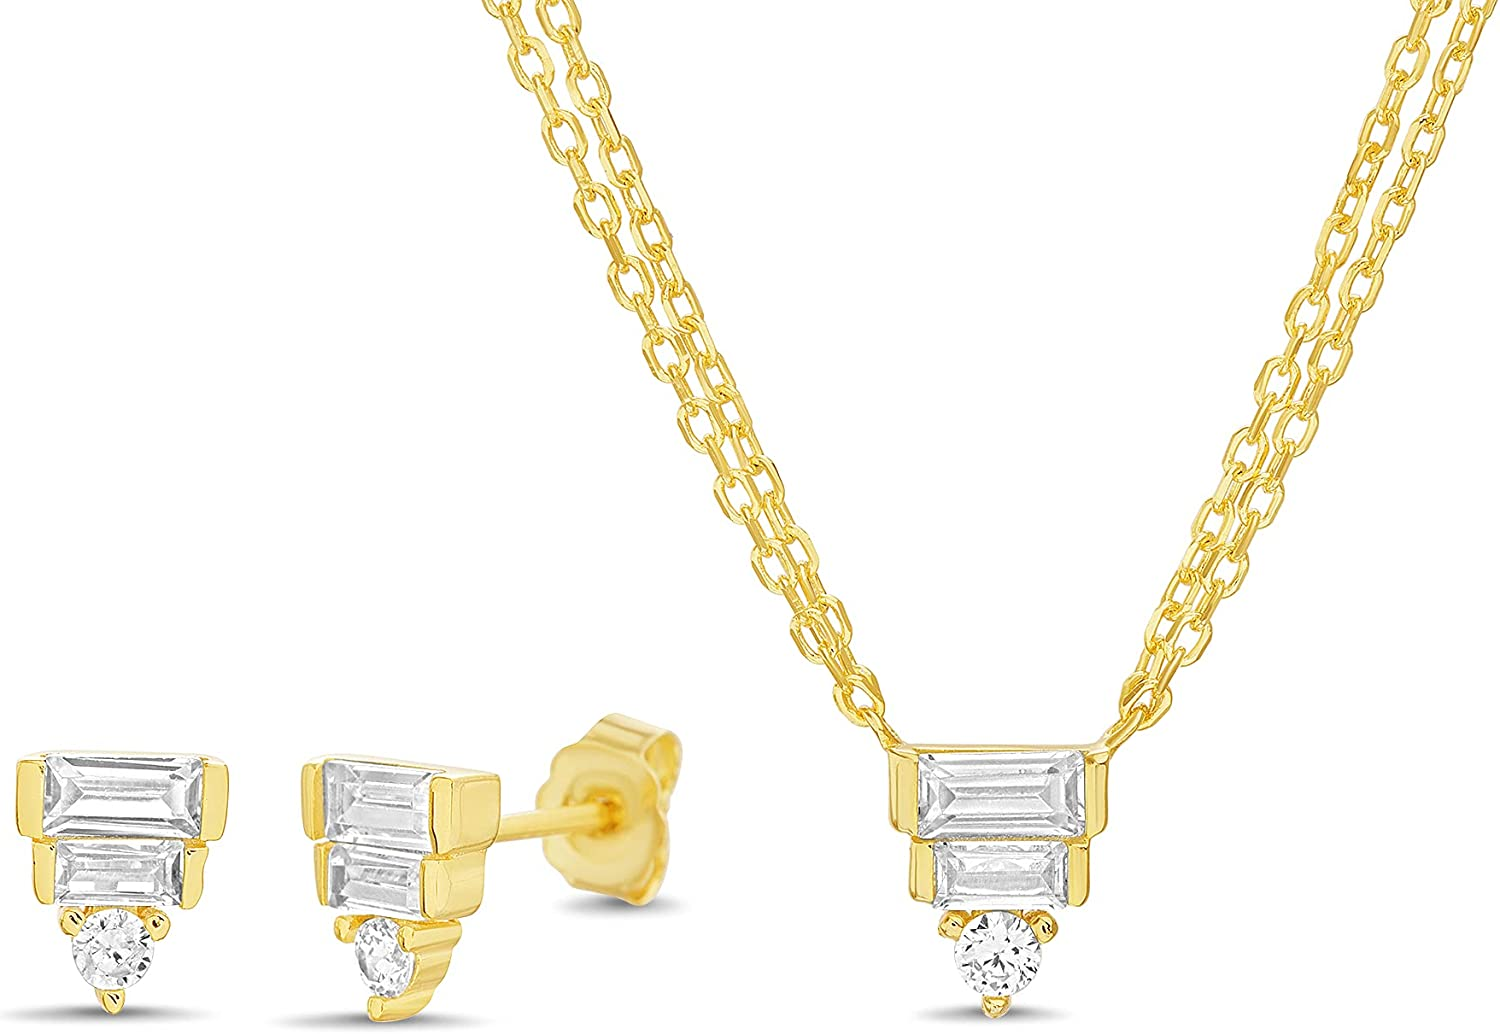 Badgley Mischka Baguette Cubic Zirconia Triangle Stud Earrings and Double Layered Necklace for Women Yellow Two Piece Set Adjustable 16 - 18 Inches